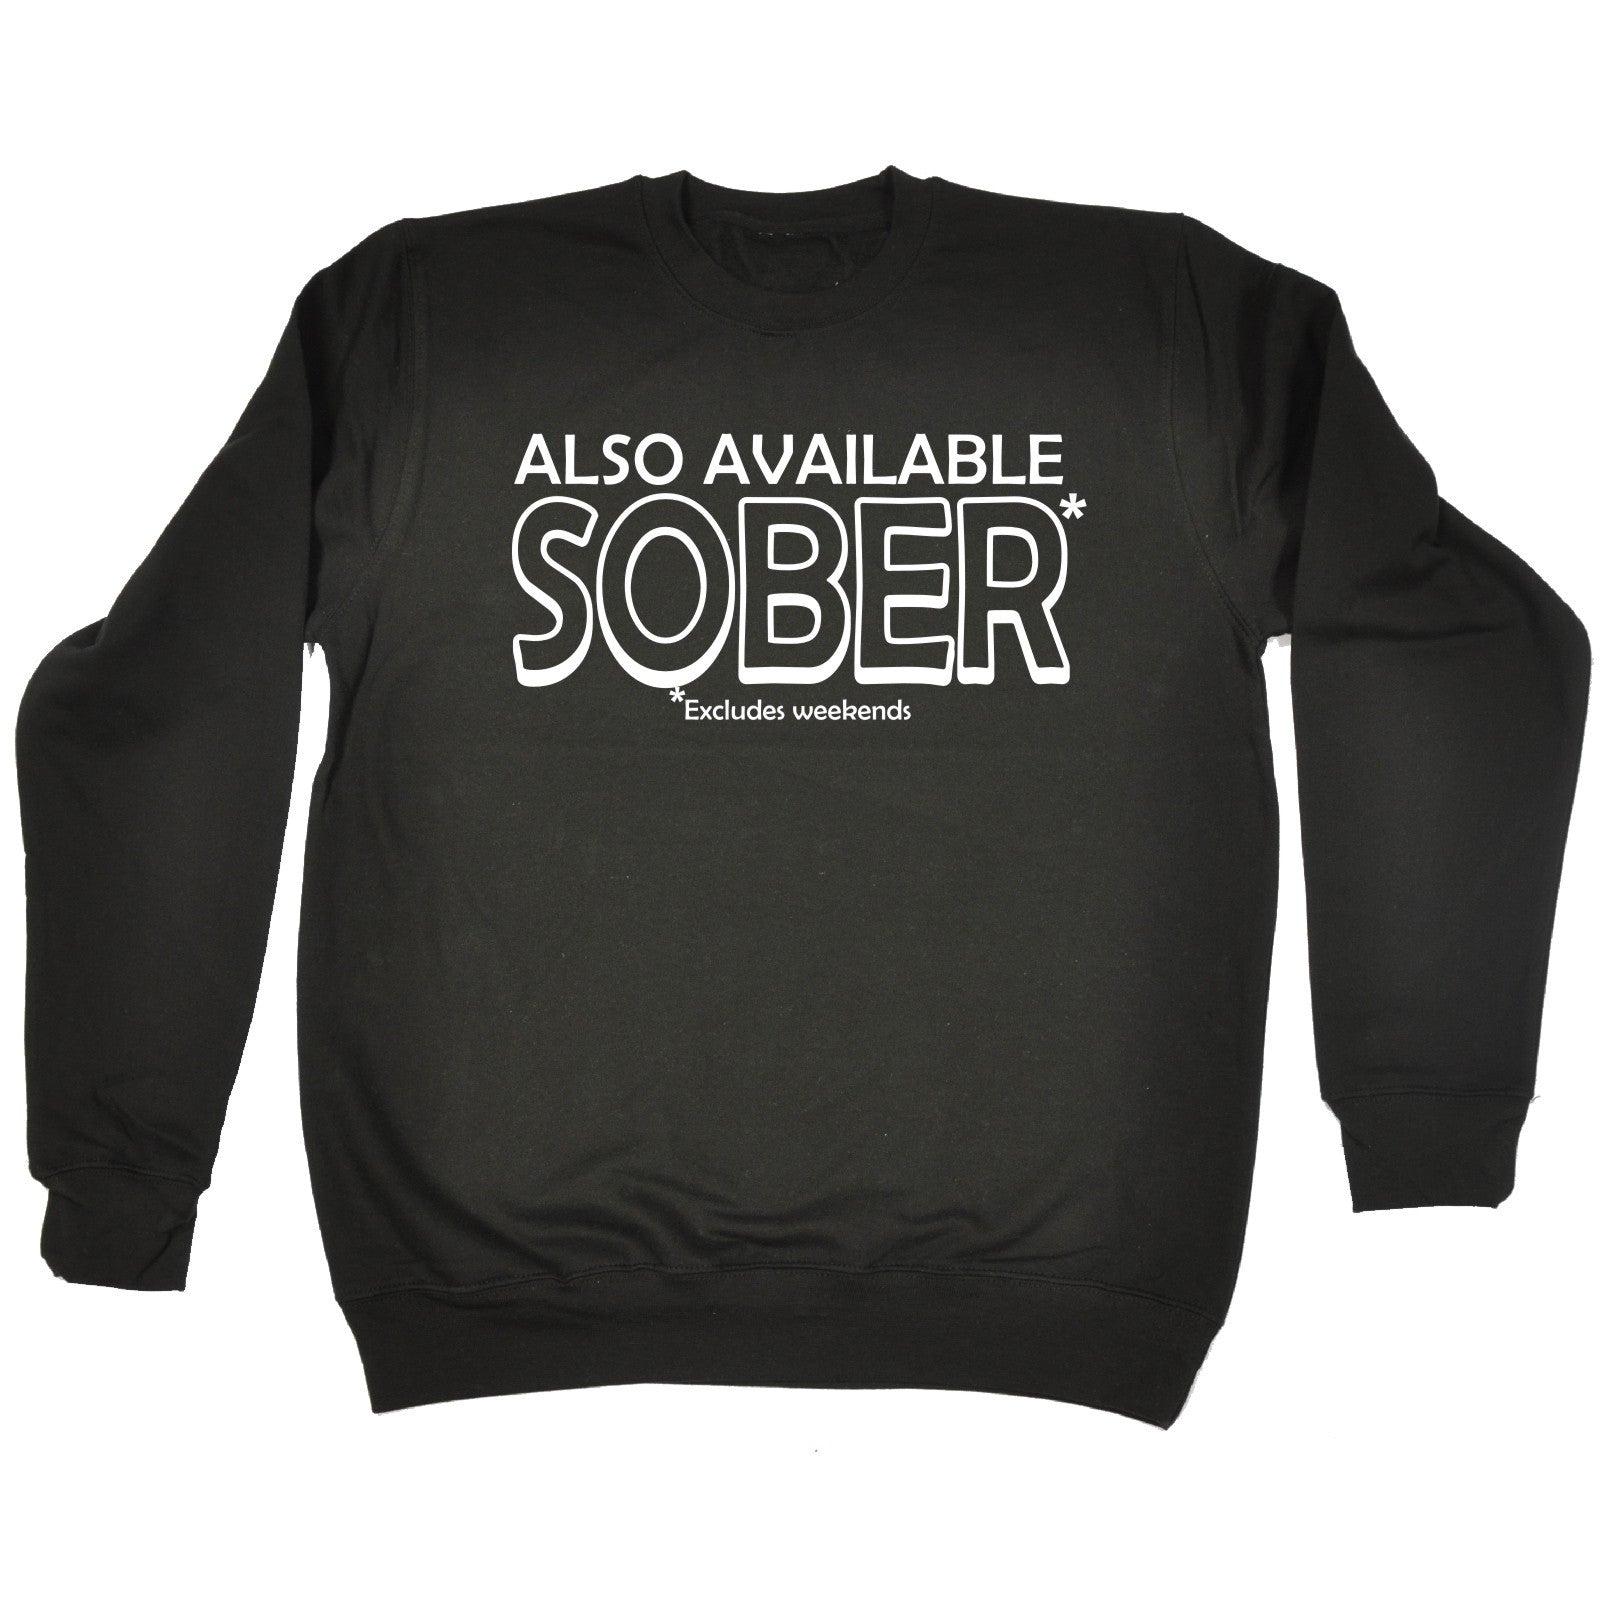 8ac5835a3a 123t Also Available Sober Excludes Weekends Funny Sweatshirt - 123t clothing  gifts presents